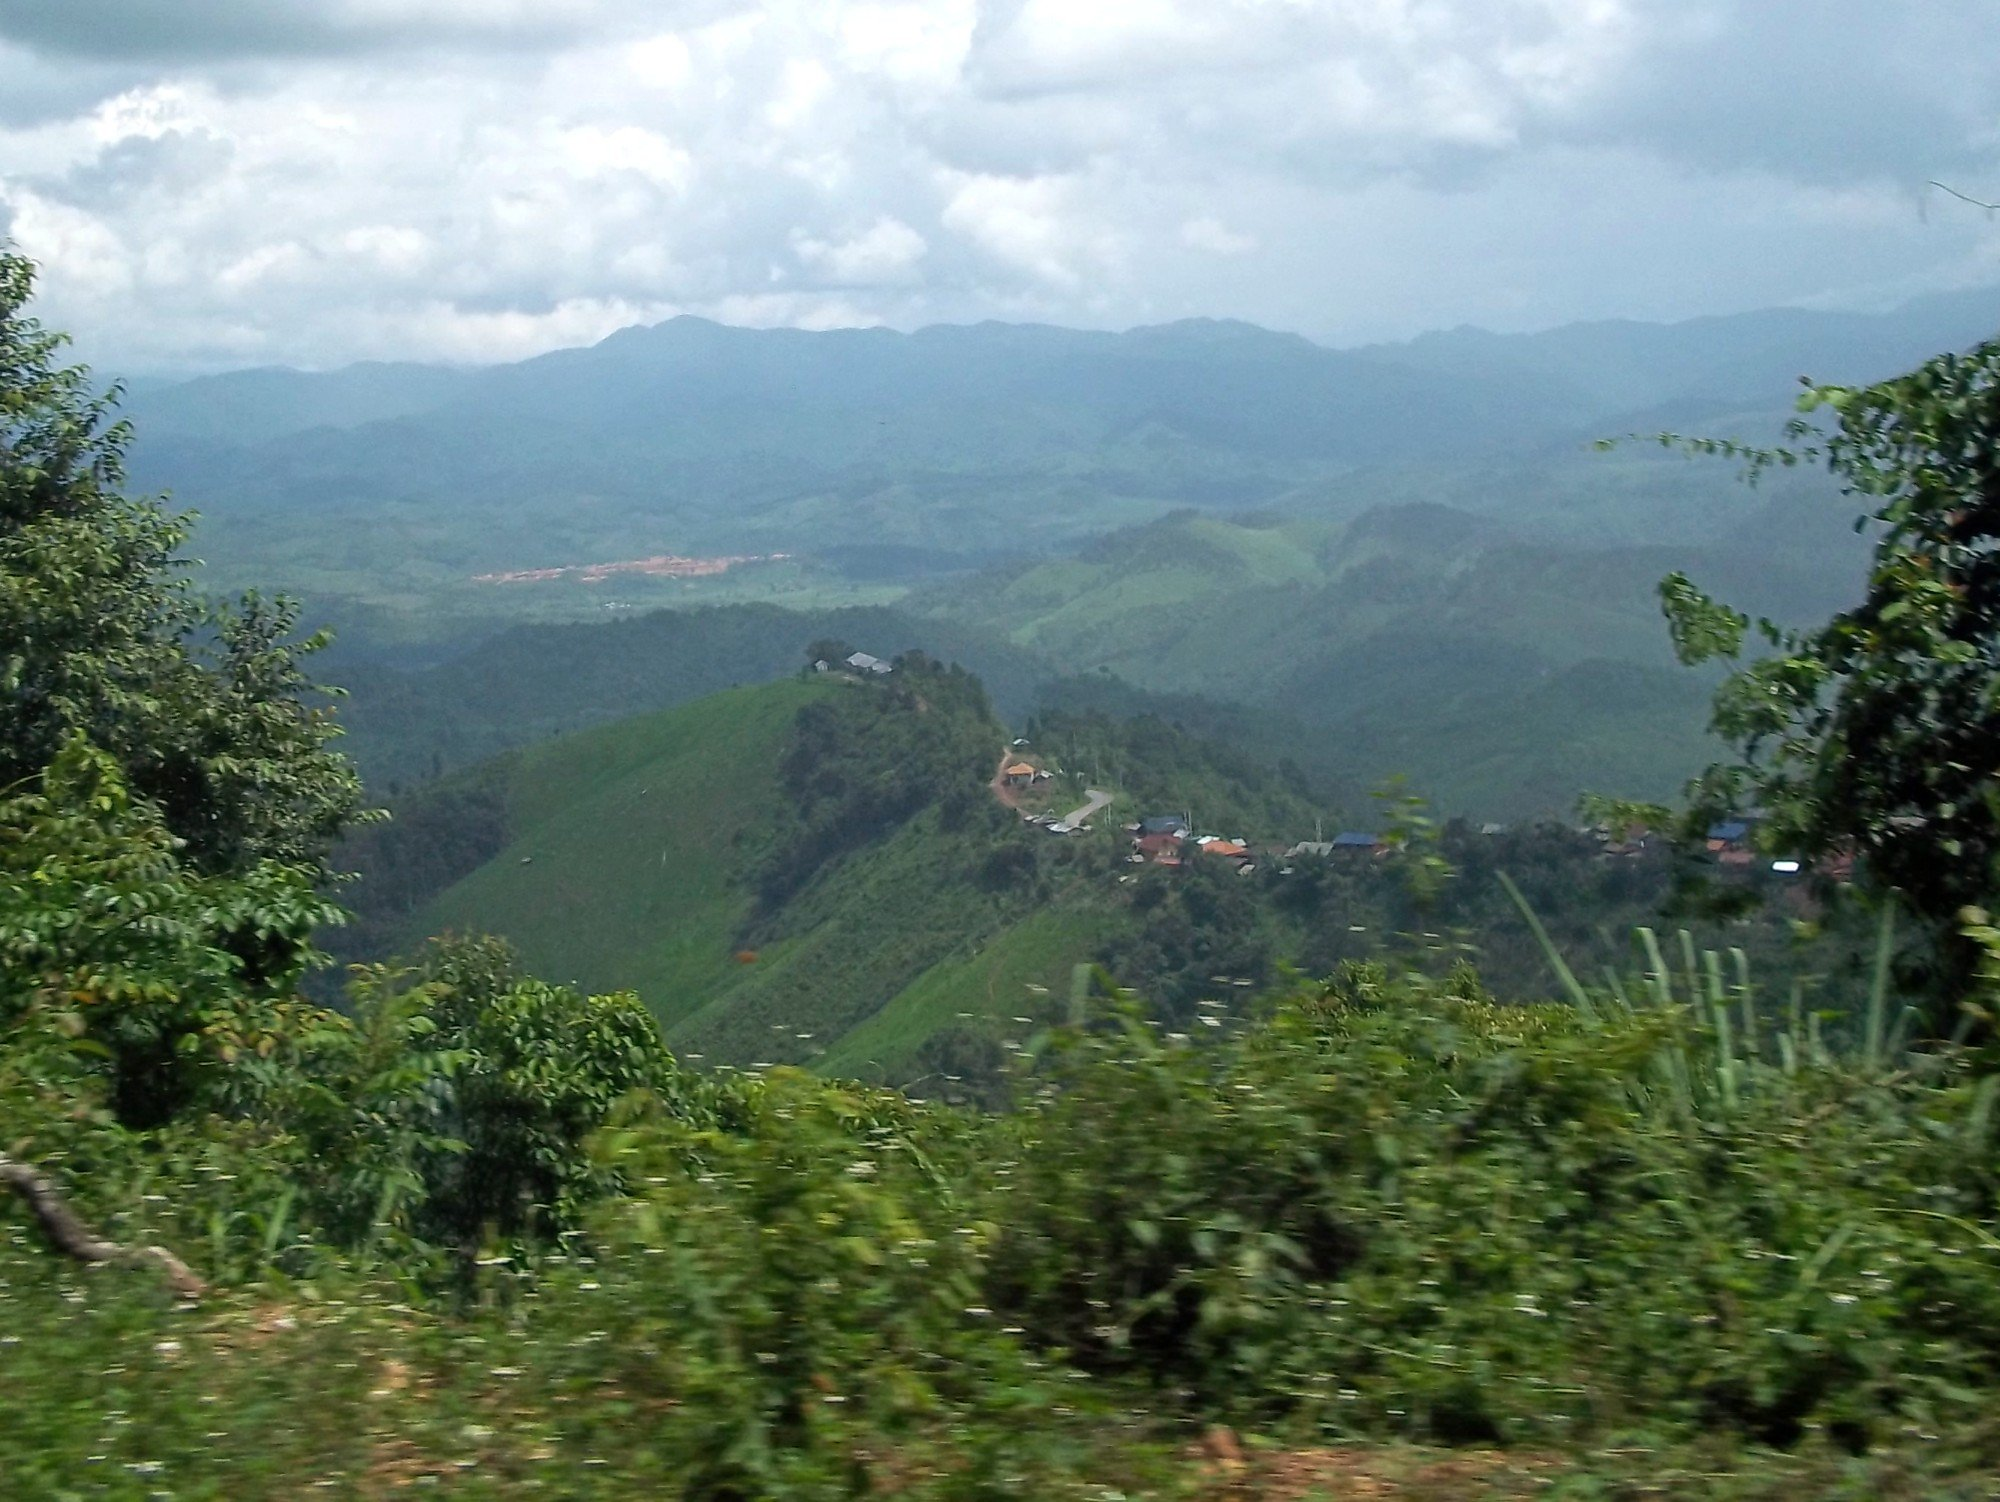 The road to Phonsavan passes through hill top villages